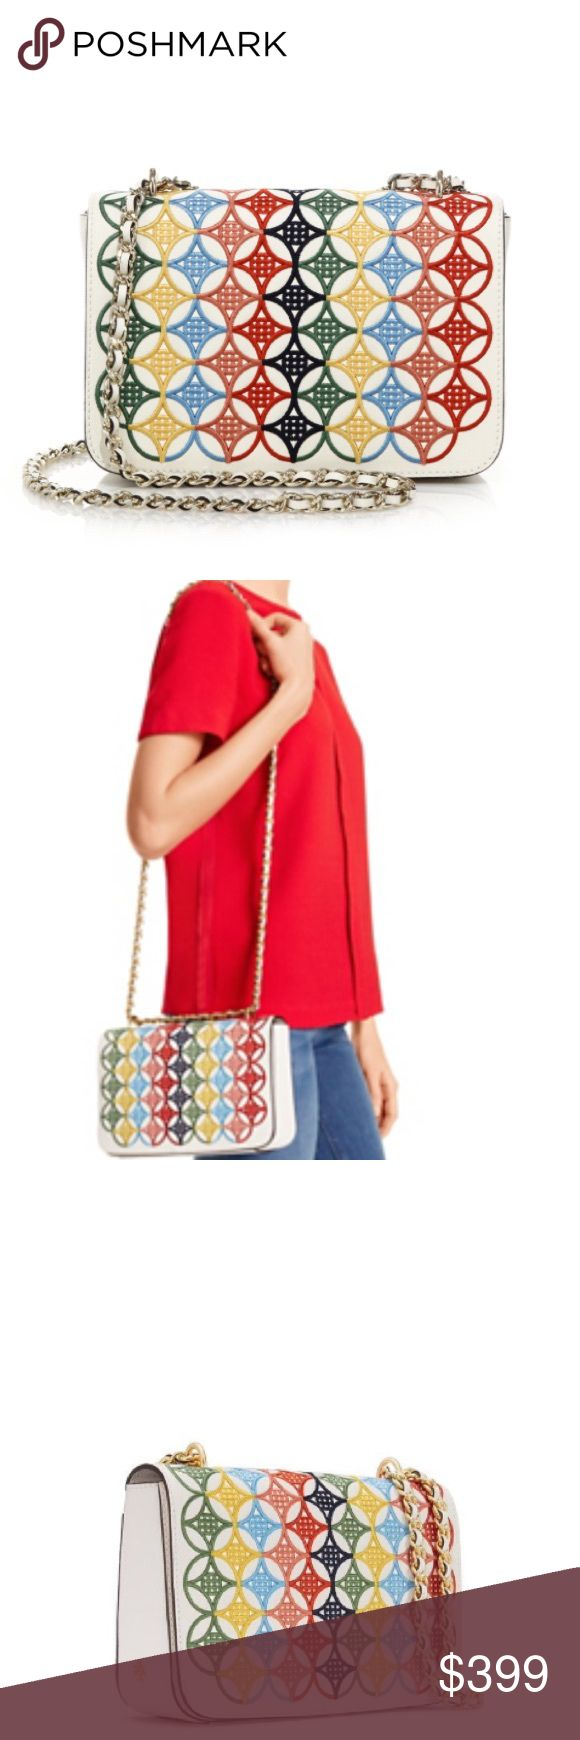 "Tory burch multi color shoulder bag Gorgeous embroidered shoulder bag from the Robinson collection by Tory burch! More pictures will be posted ! 5.9"" x 8.9"" x 2.5"" . Chain strap drop 23.3"" Tory Burch Bags Shoulder Bags"